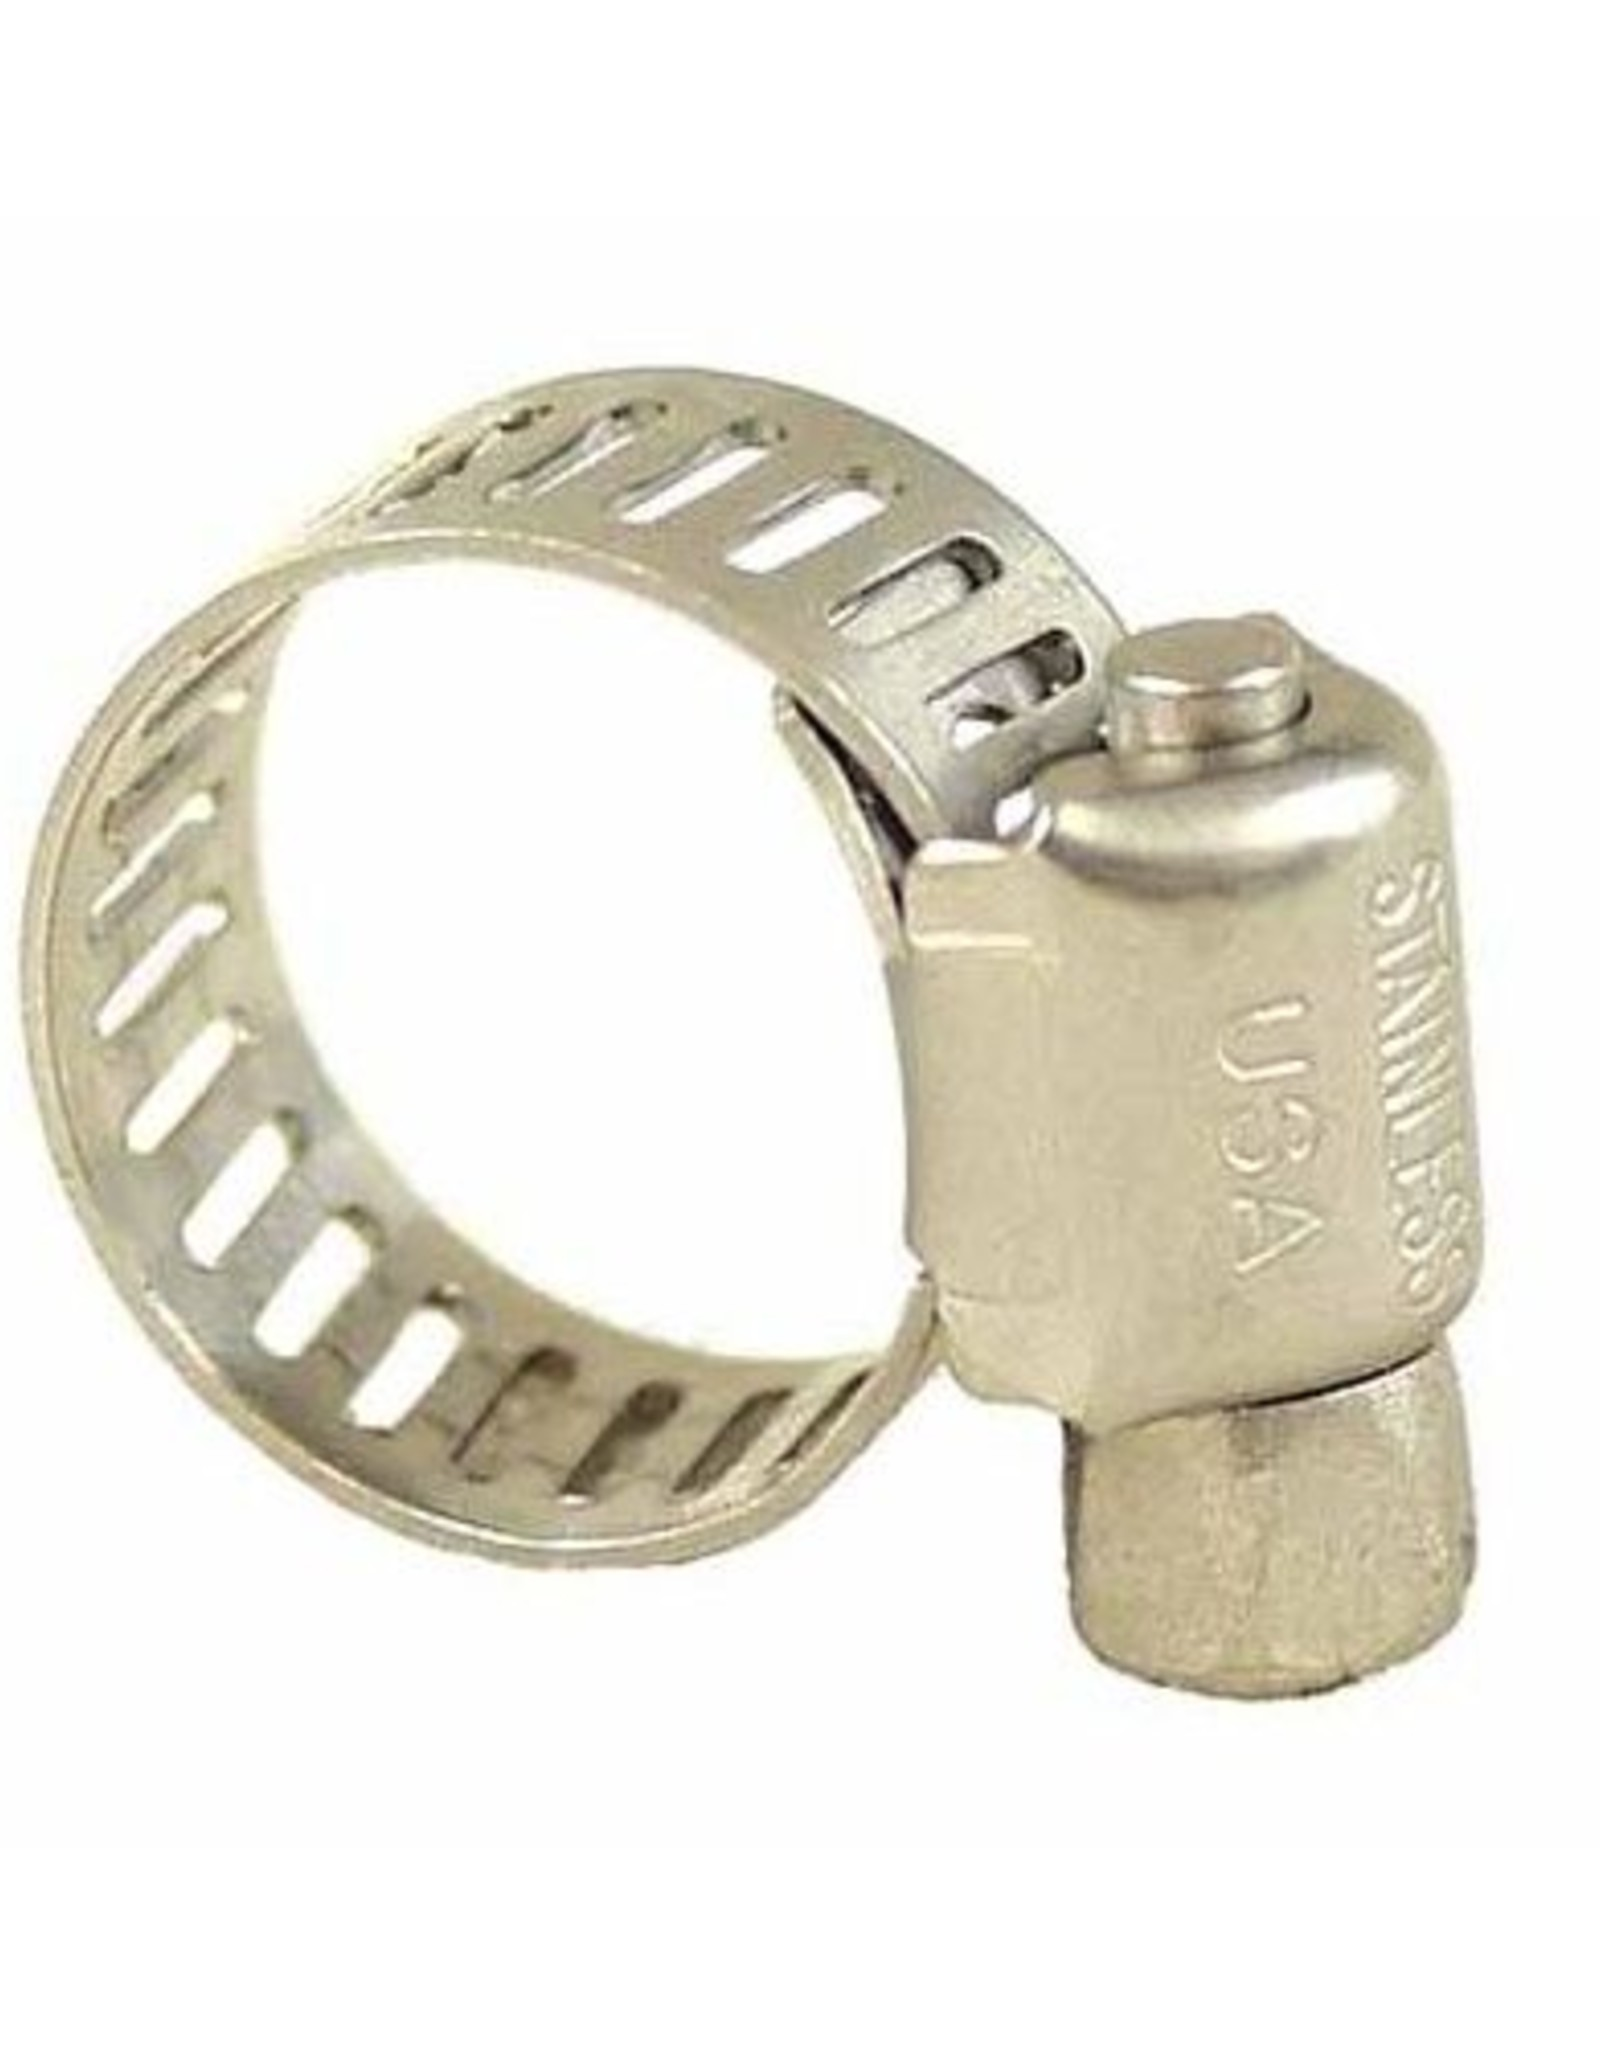 "HOSE CLAMP - 3/8""-7/8"" OD"